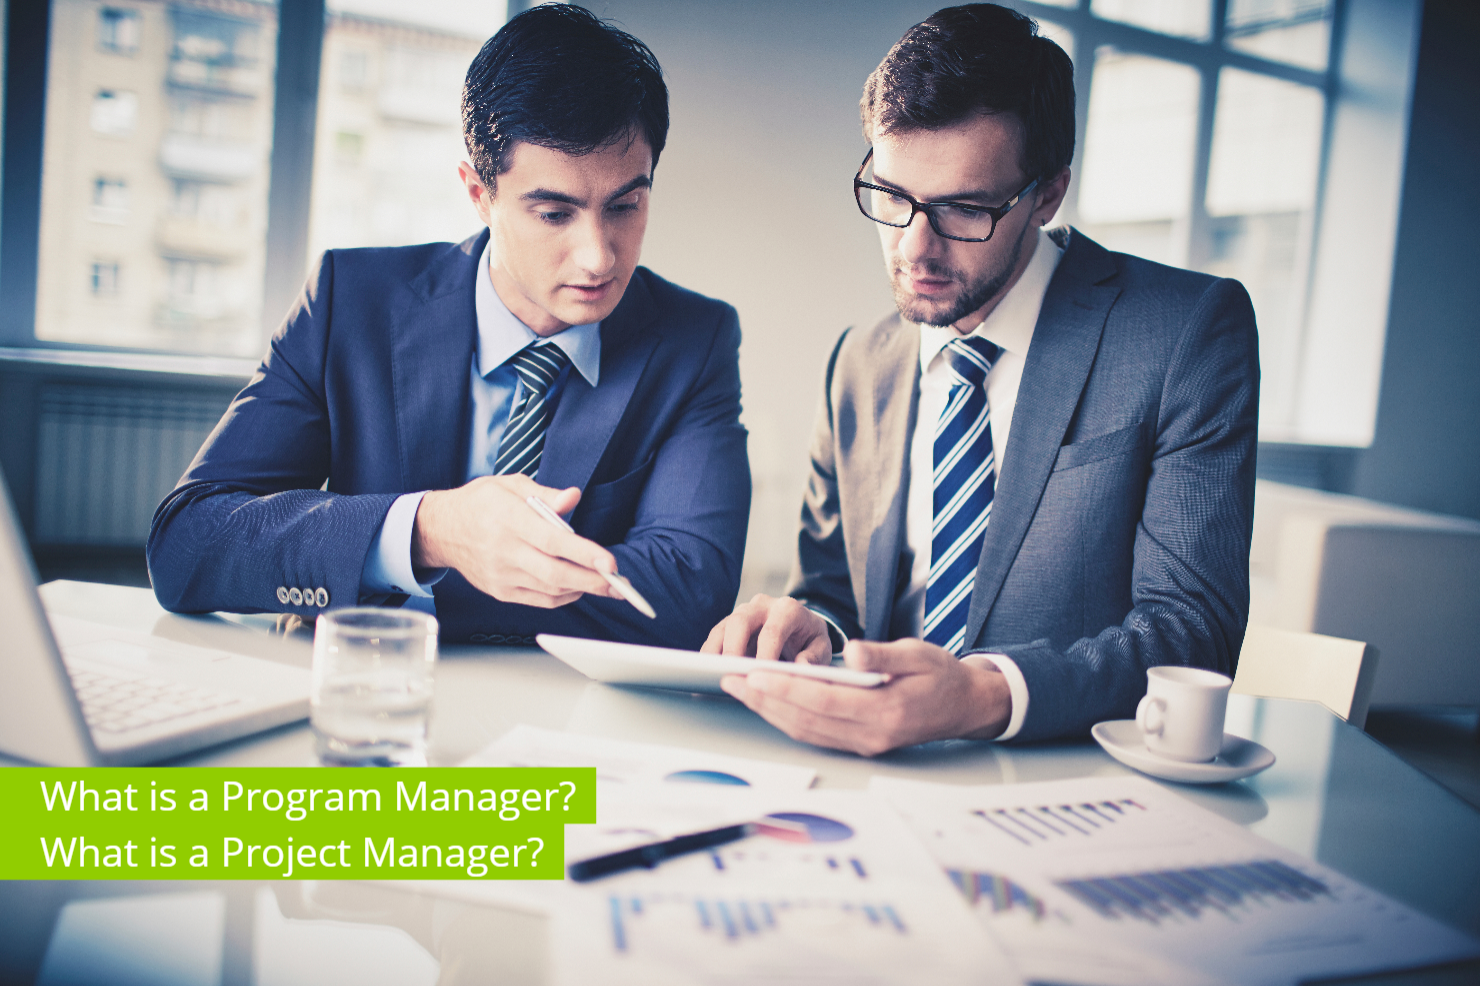 What is a Program Manager vs. a Project Manager?